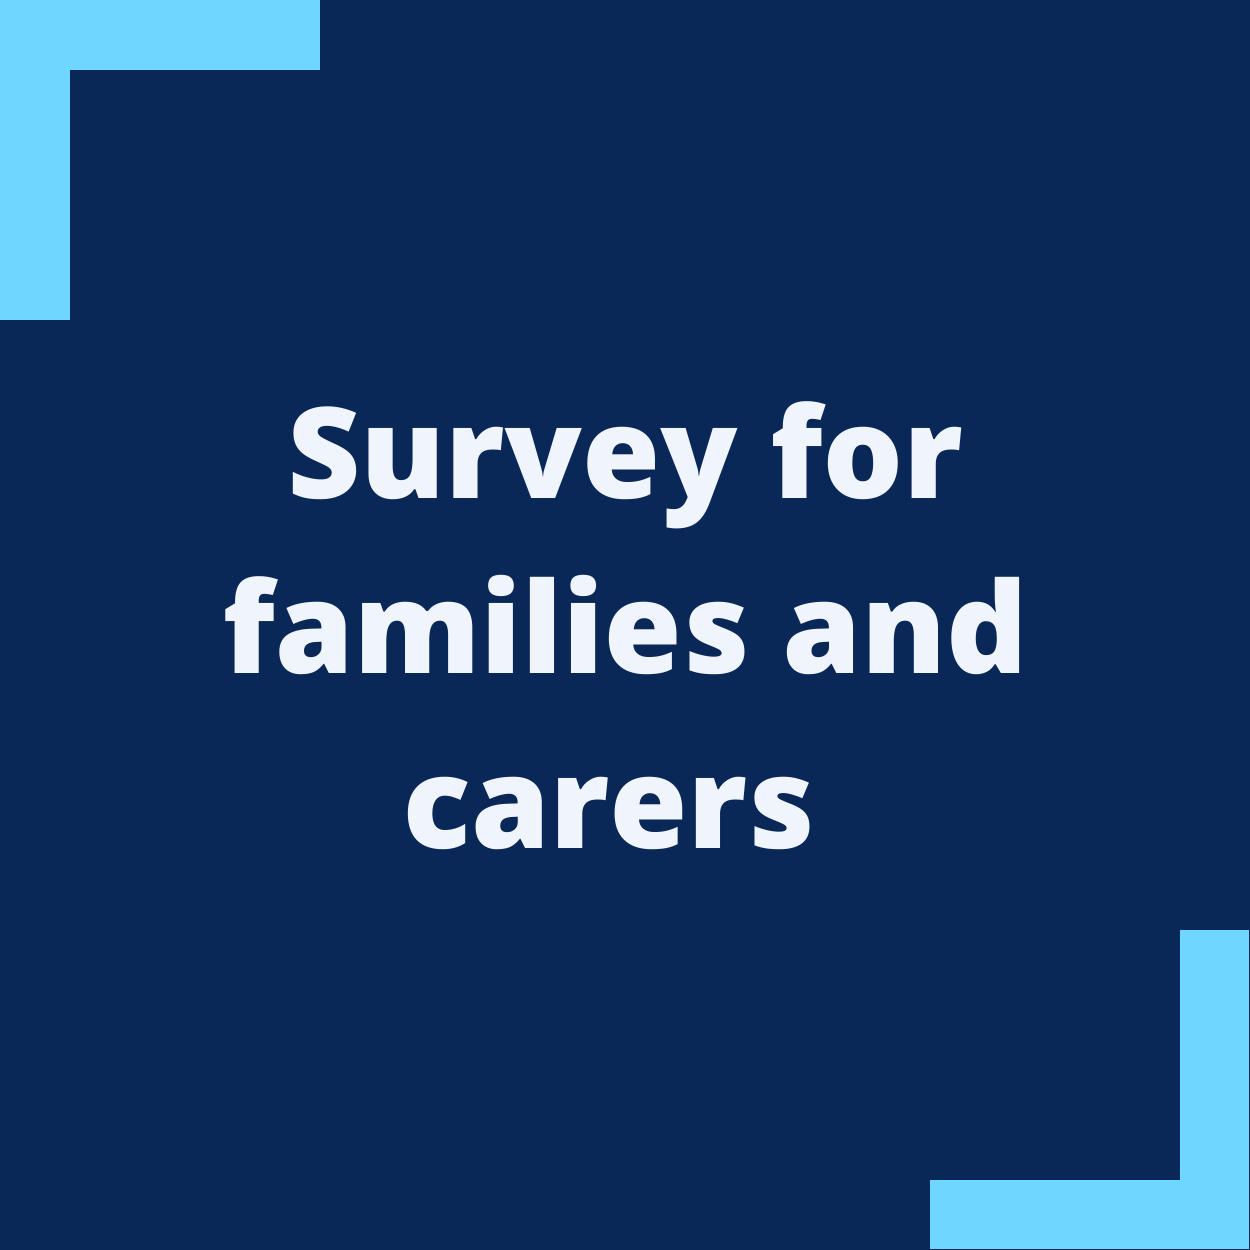 Survey for families and carers